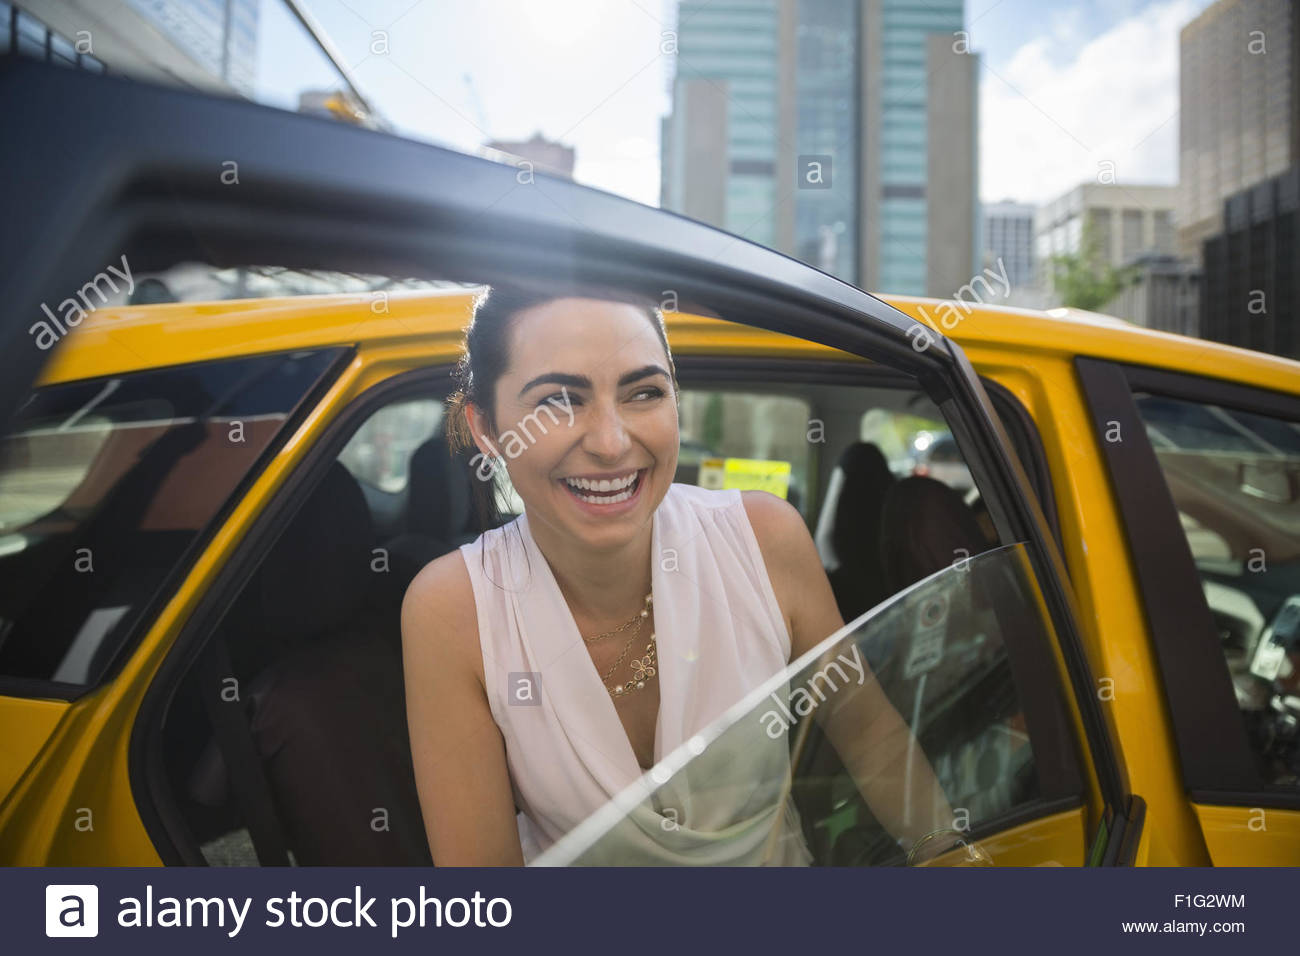 Smiling businesswoman getting out of taxi in city - Stock Image